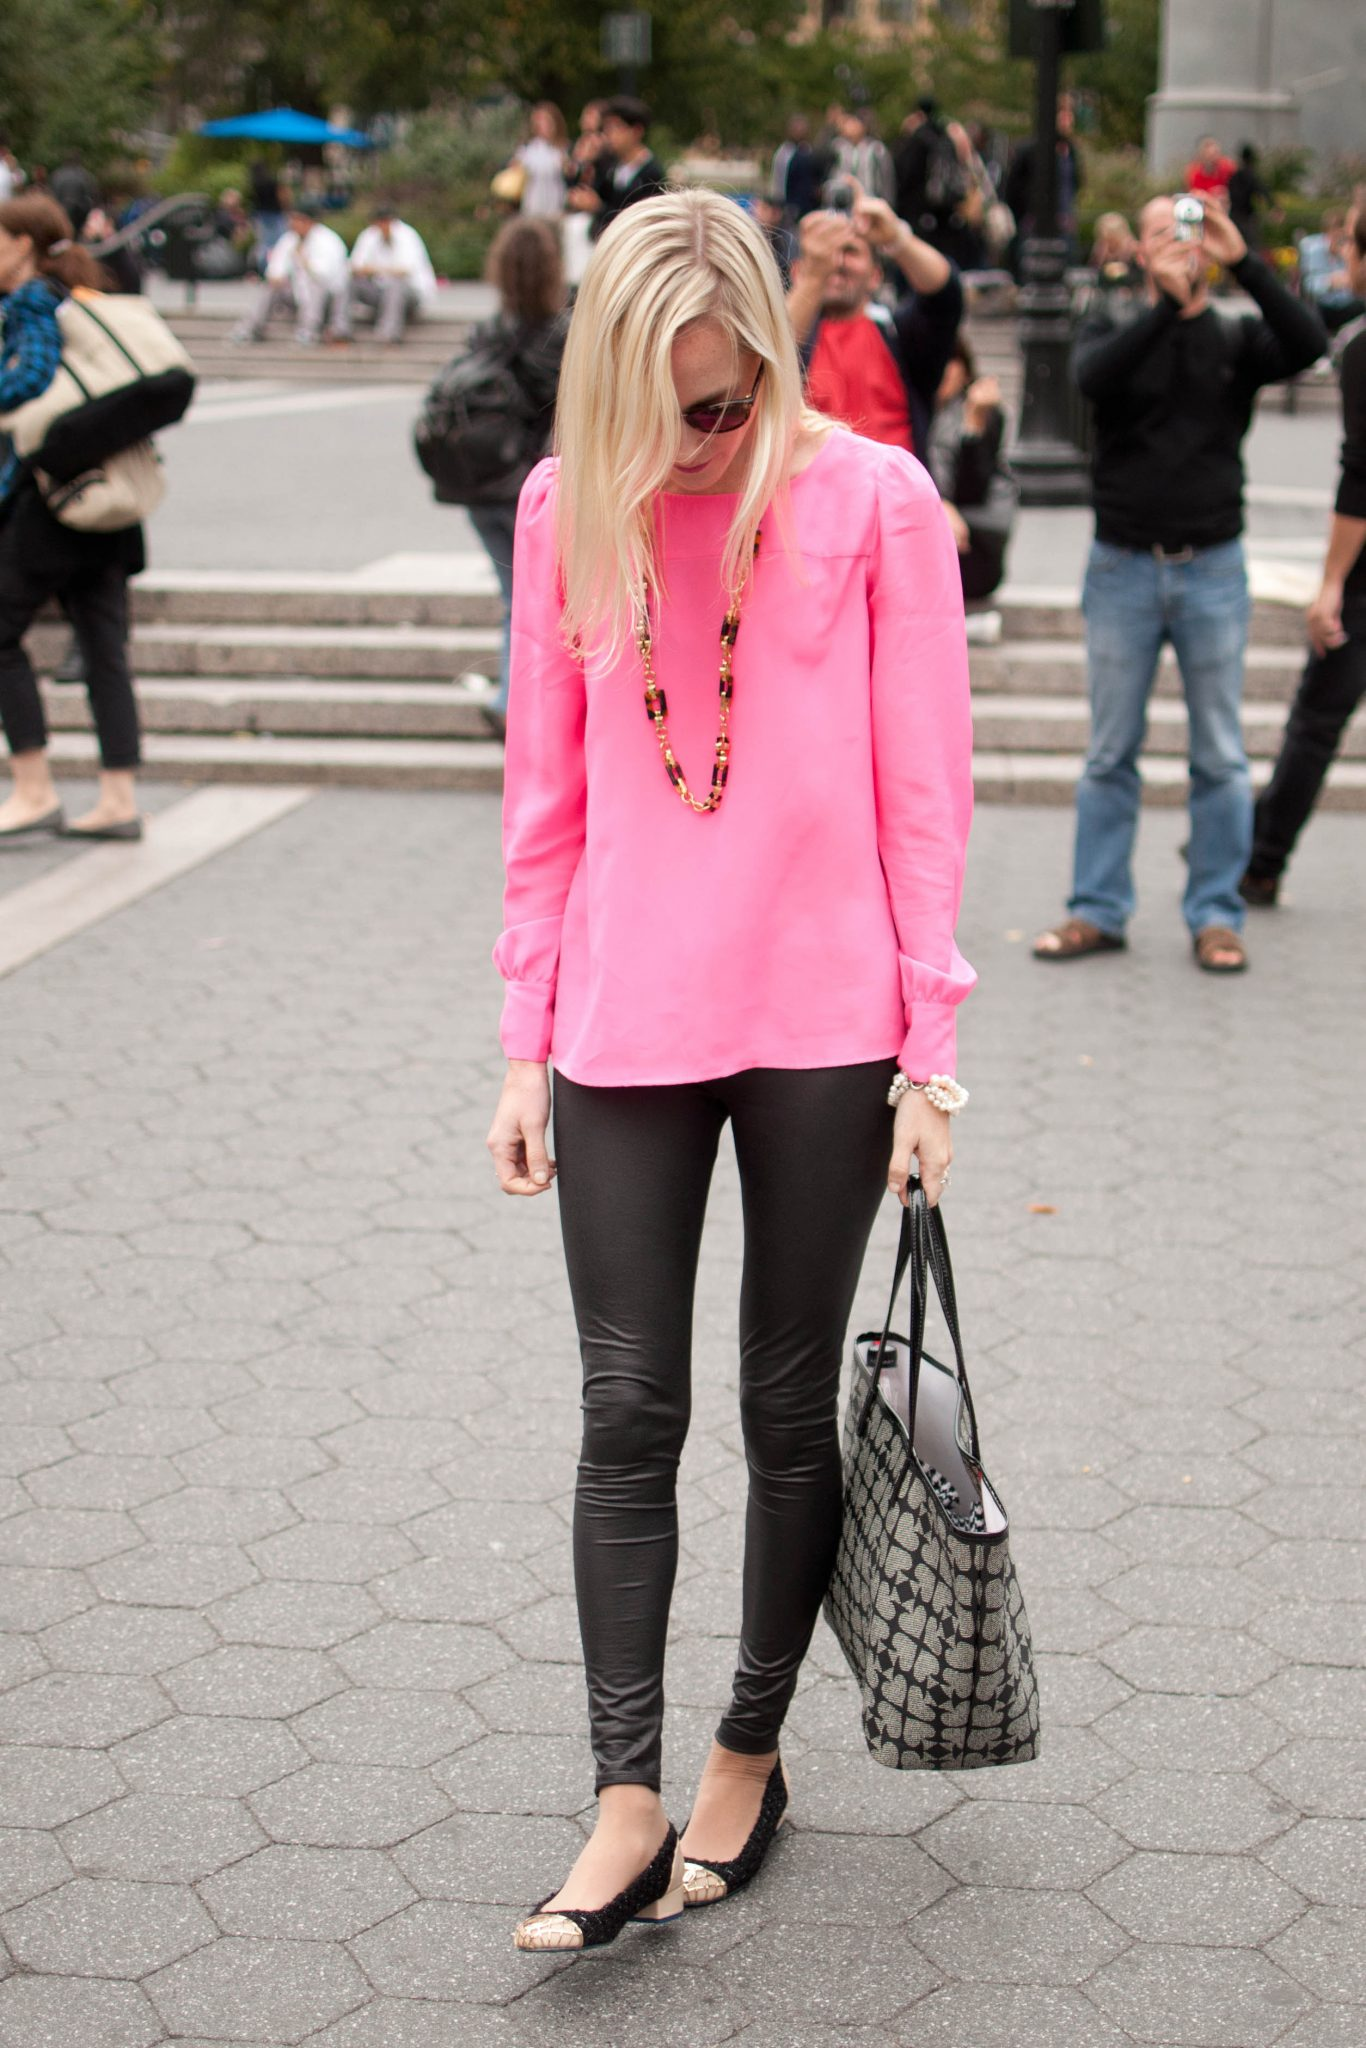 Forum on this topic: 10 Best Shoes To Wear With Leggings, 10-best-shoes-to-wear-with-leggings/